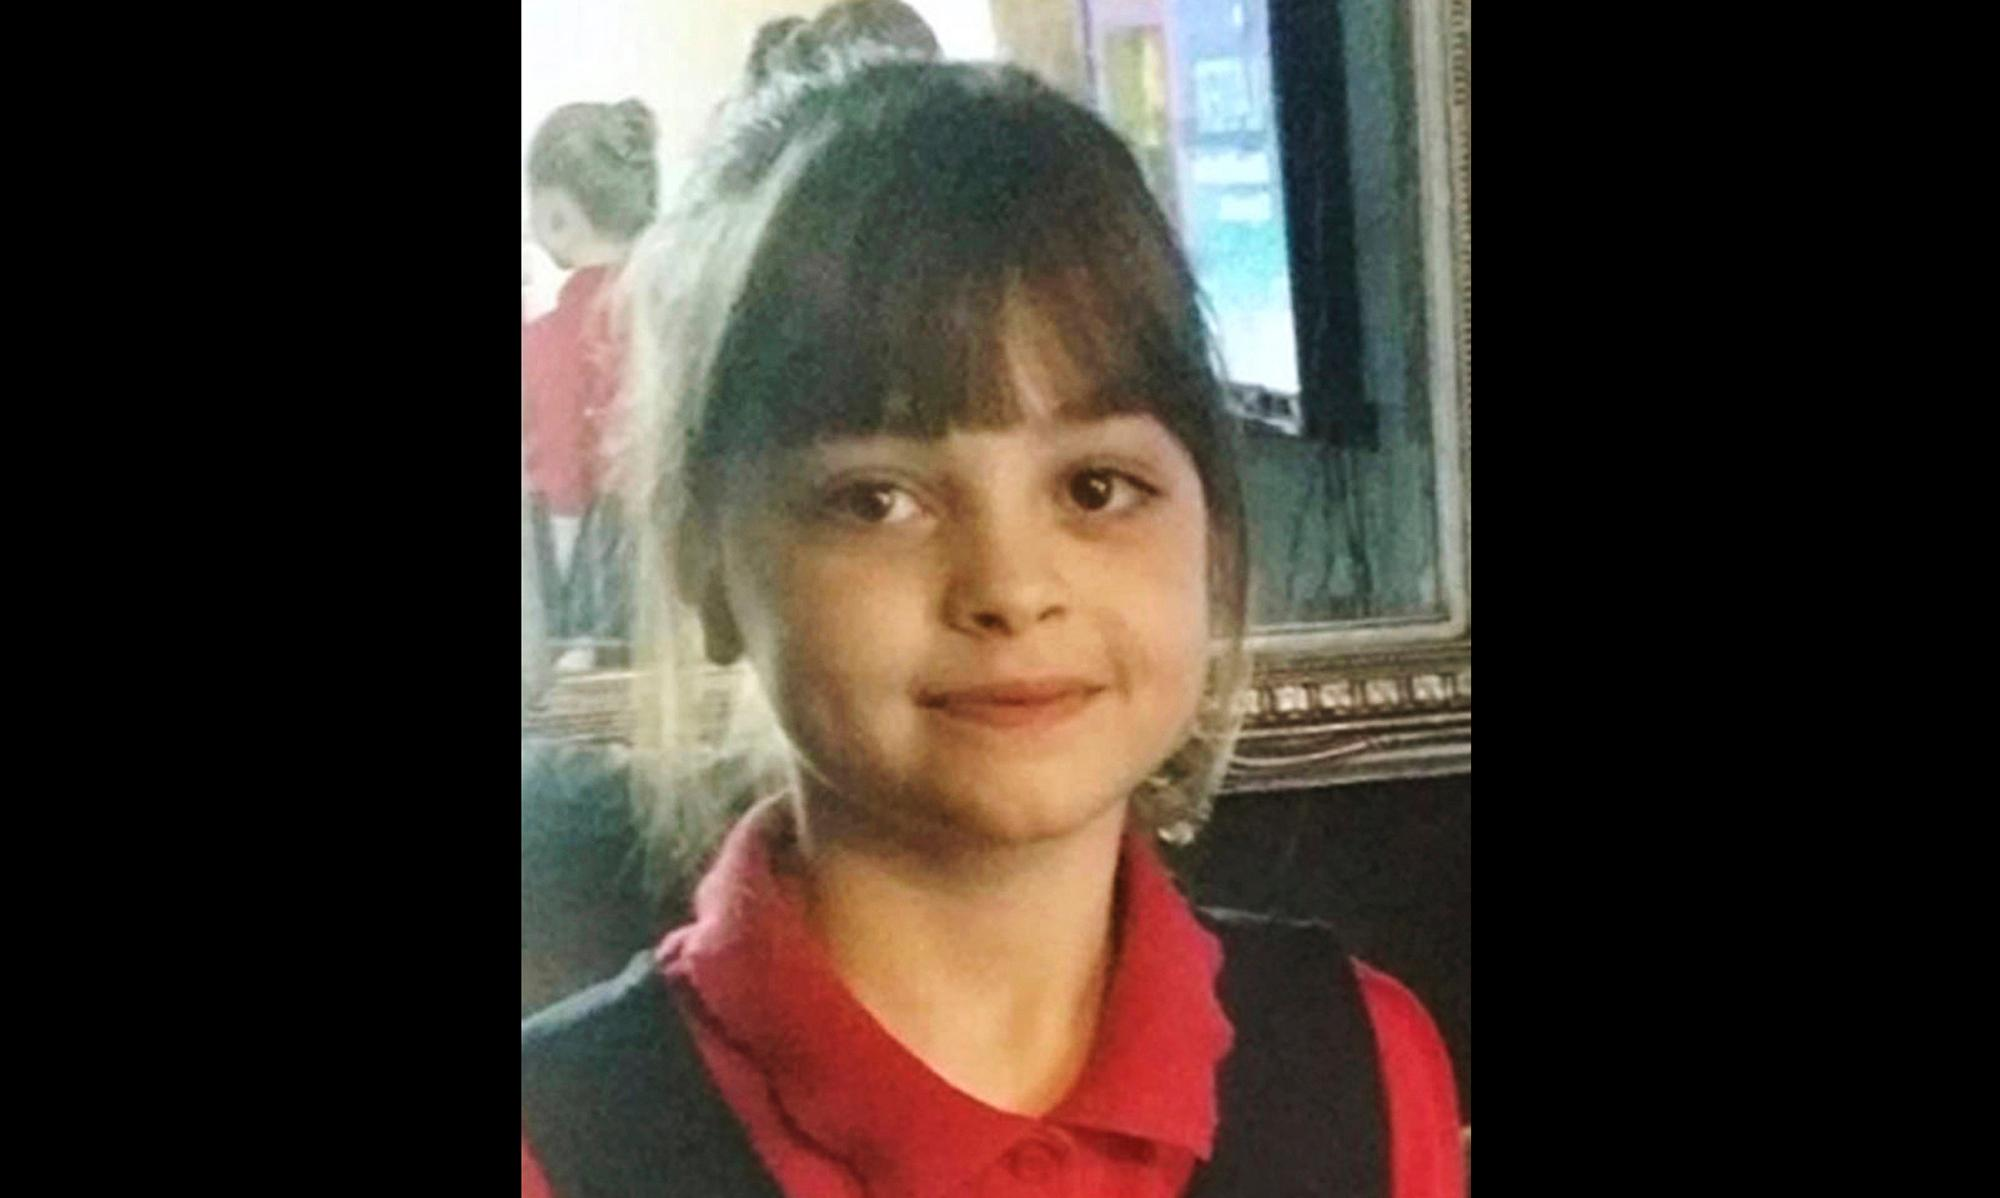 This undated photo obtained by the Press Association on Tuesday, May 23, 2017, of Saffie Roussos, one of the victims of an attack at Manchester Arena, in Manchester, England, which left more than a dozen dead on Monday. (PA via AP)